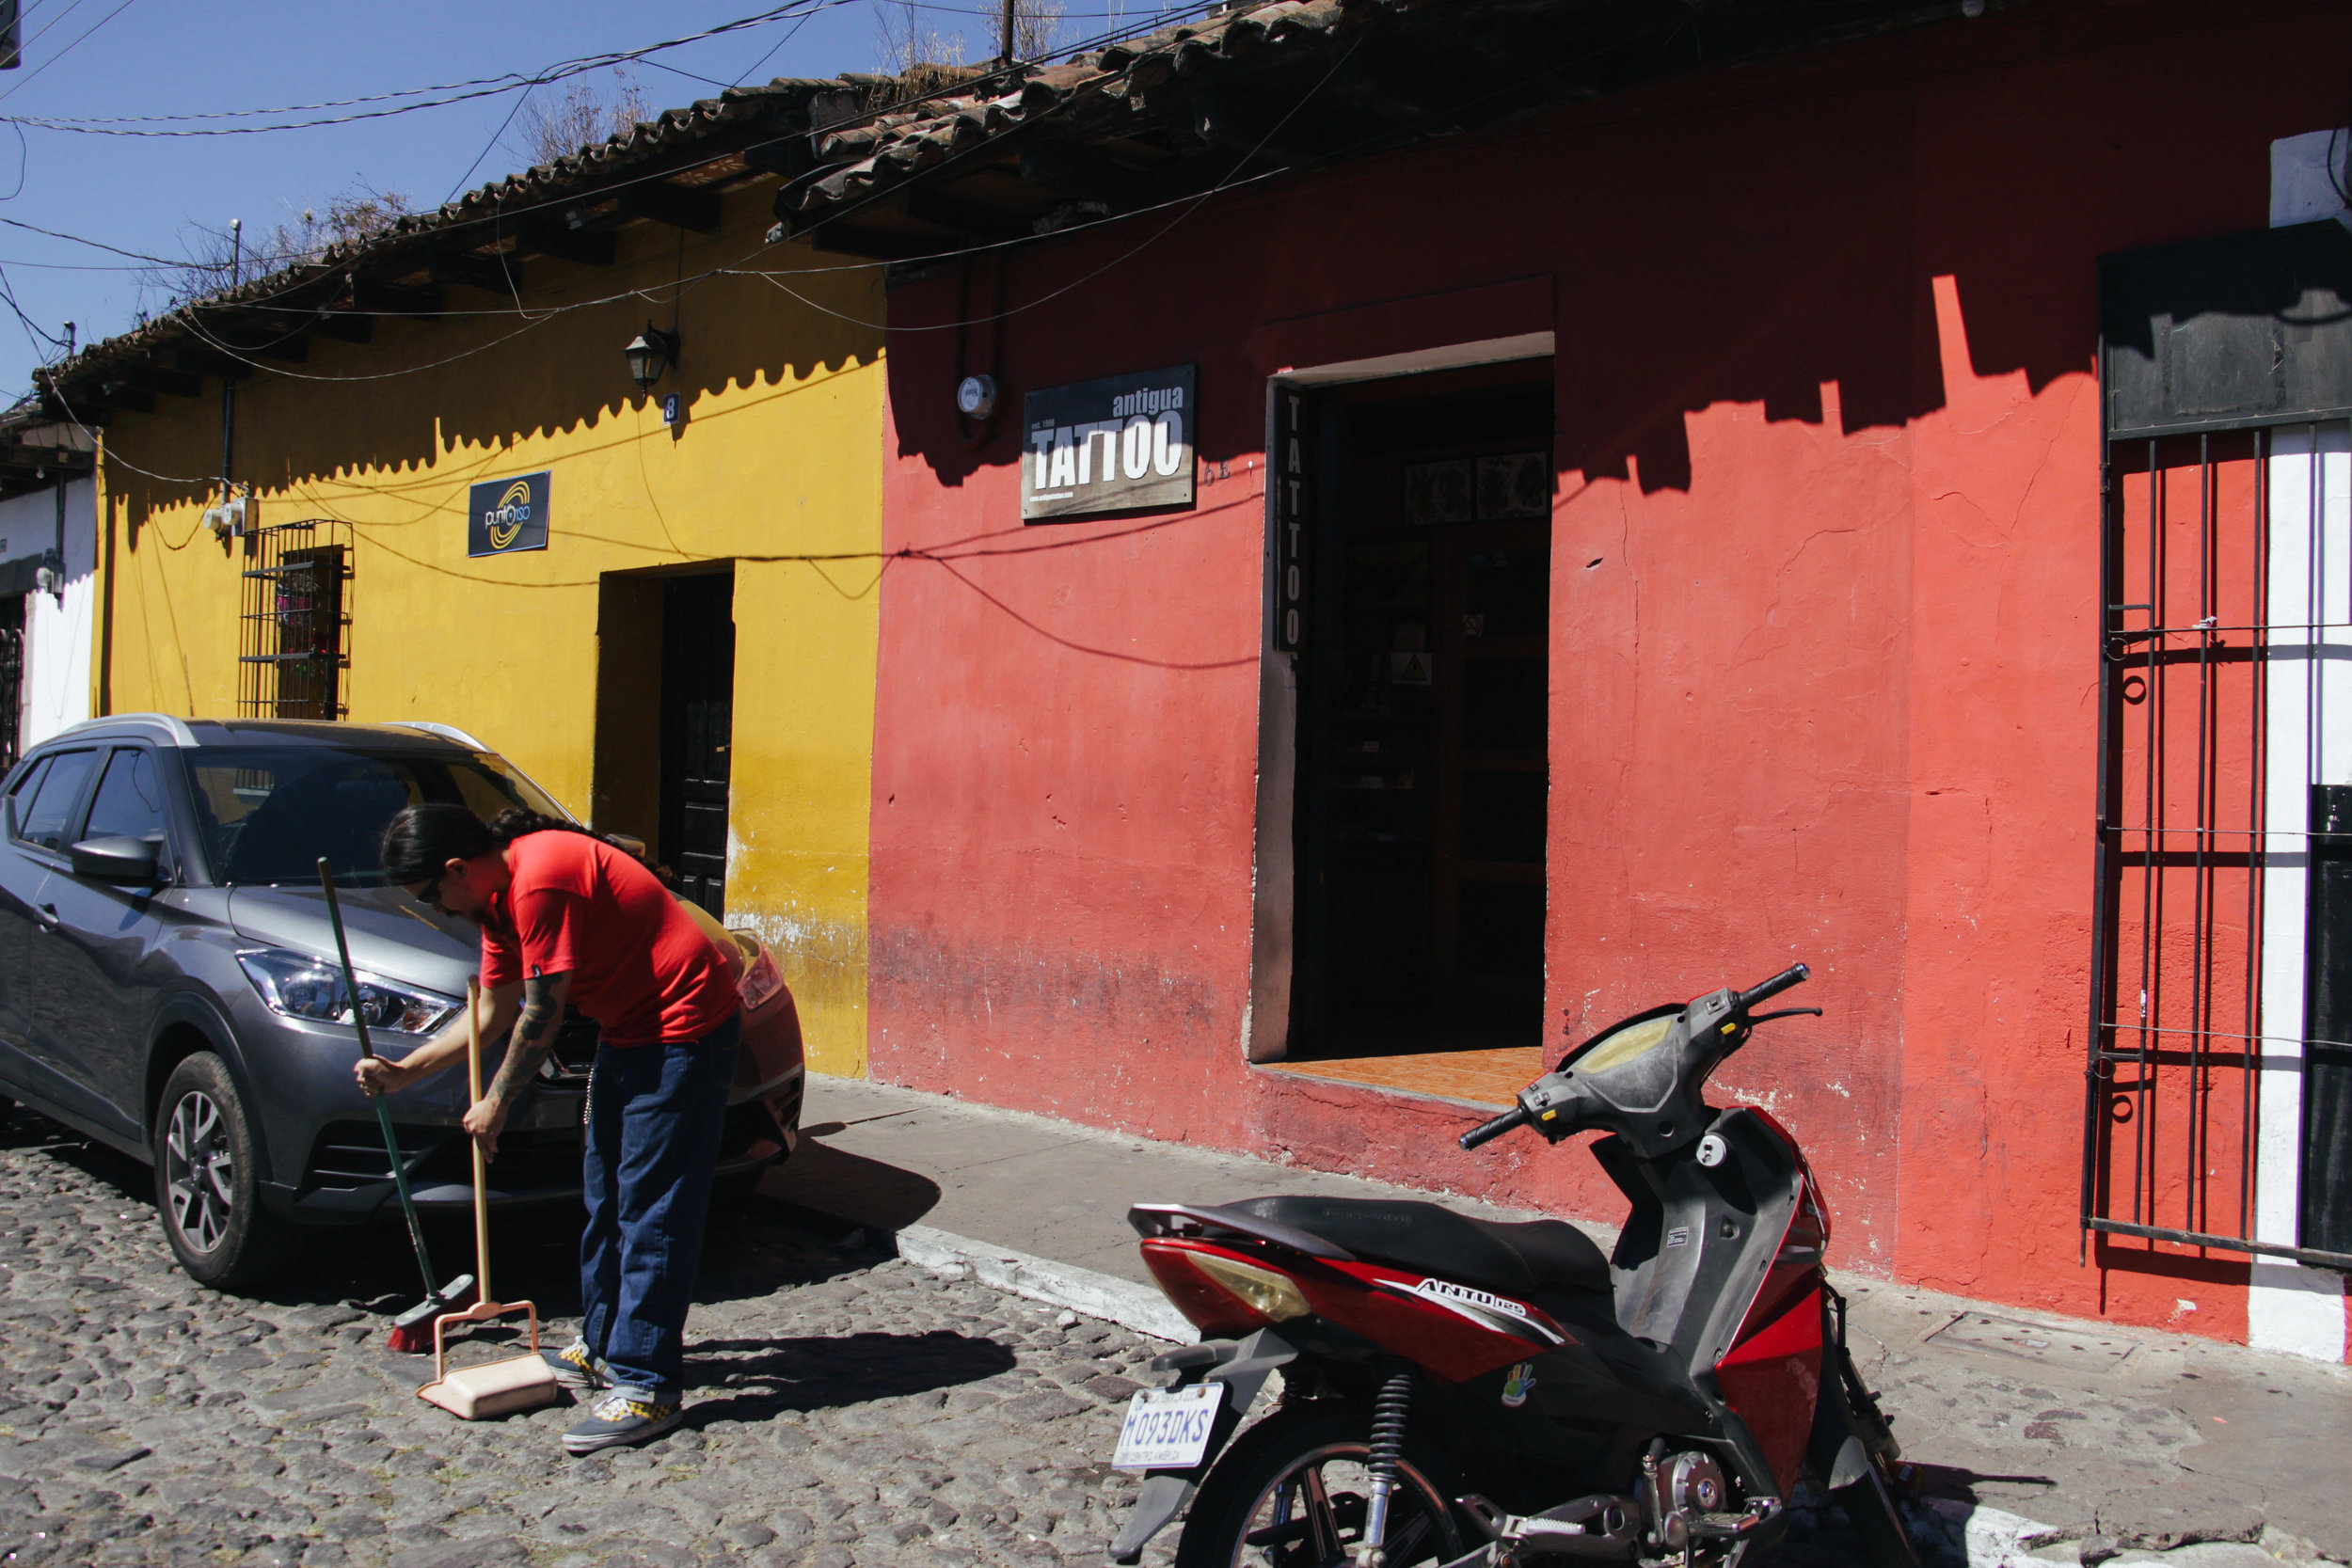 Photo by Miranda Weippert TATTOO ARTIST CARLOS WOLFOS SWEEPS THE COBBLESTONE STREET OUTSIDE OF HIS BROTHER LUIS BEDREGAL'S TATTOO SHOP IN ANTIGUA, GUATEMALA ON JAN. 13. WOLFOS HAS WORKED WITH HIS BROTHER SINCE 1998.